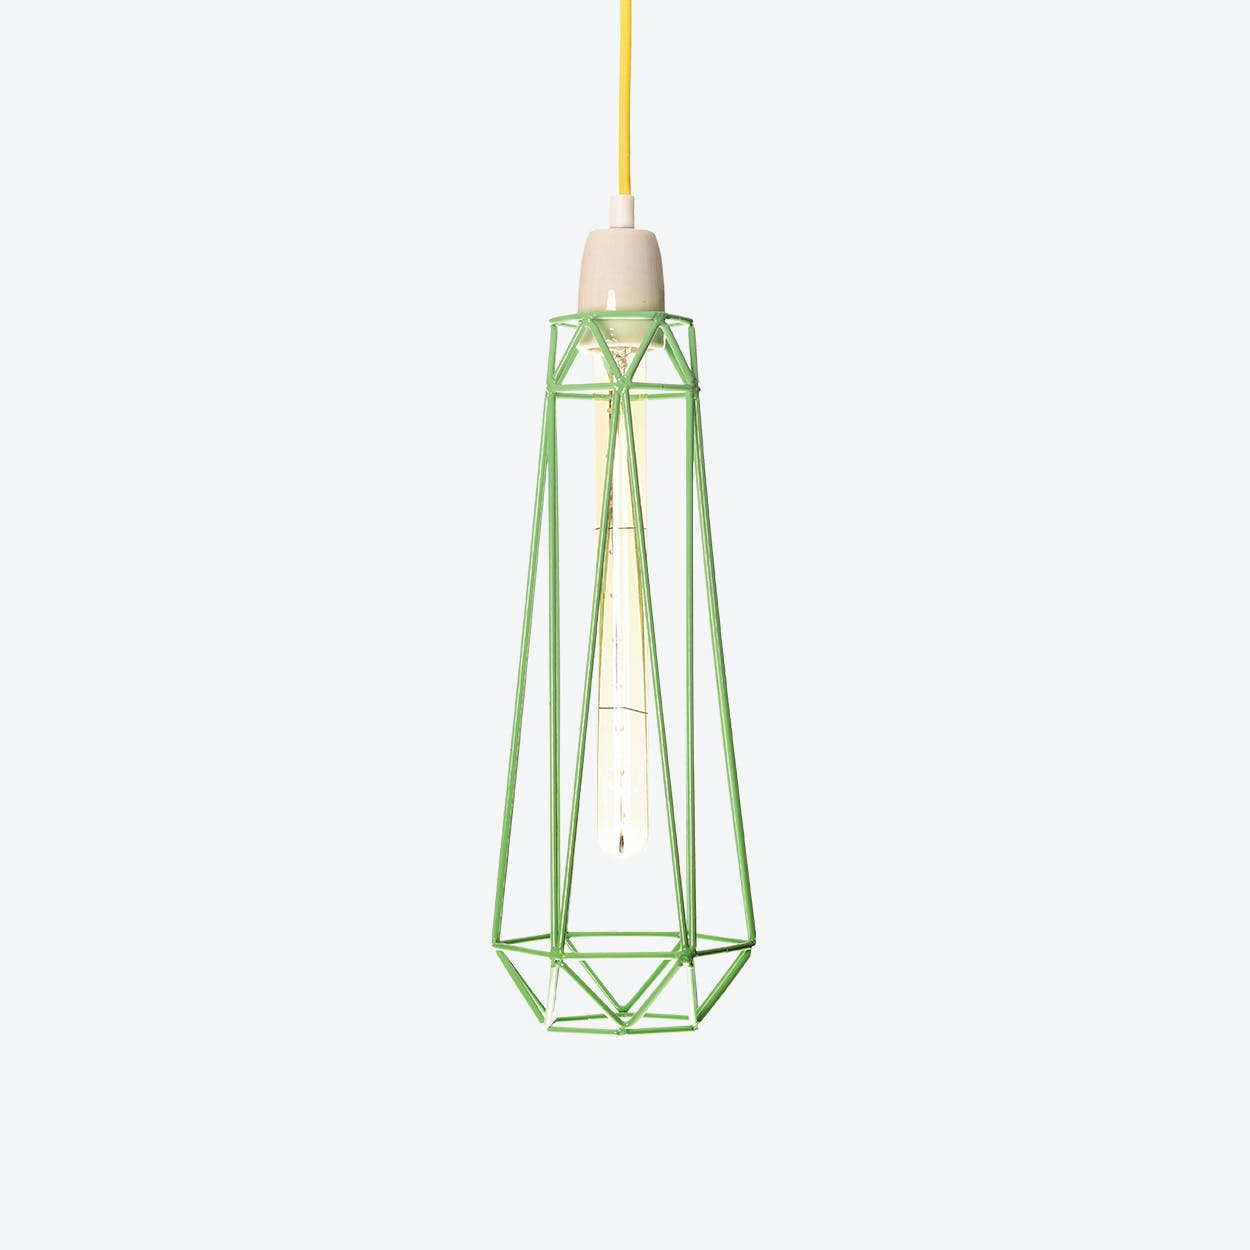 Industrial Pendant Light Slim Diamond in Mint Blue with Yellow Cord